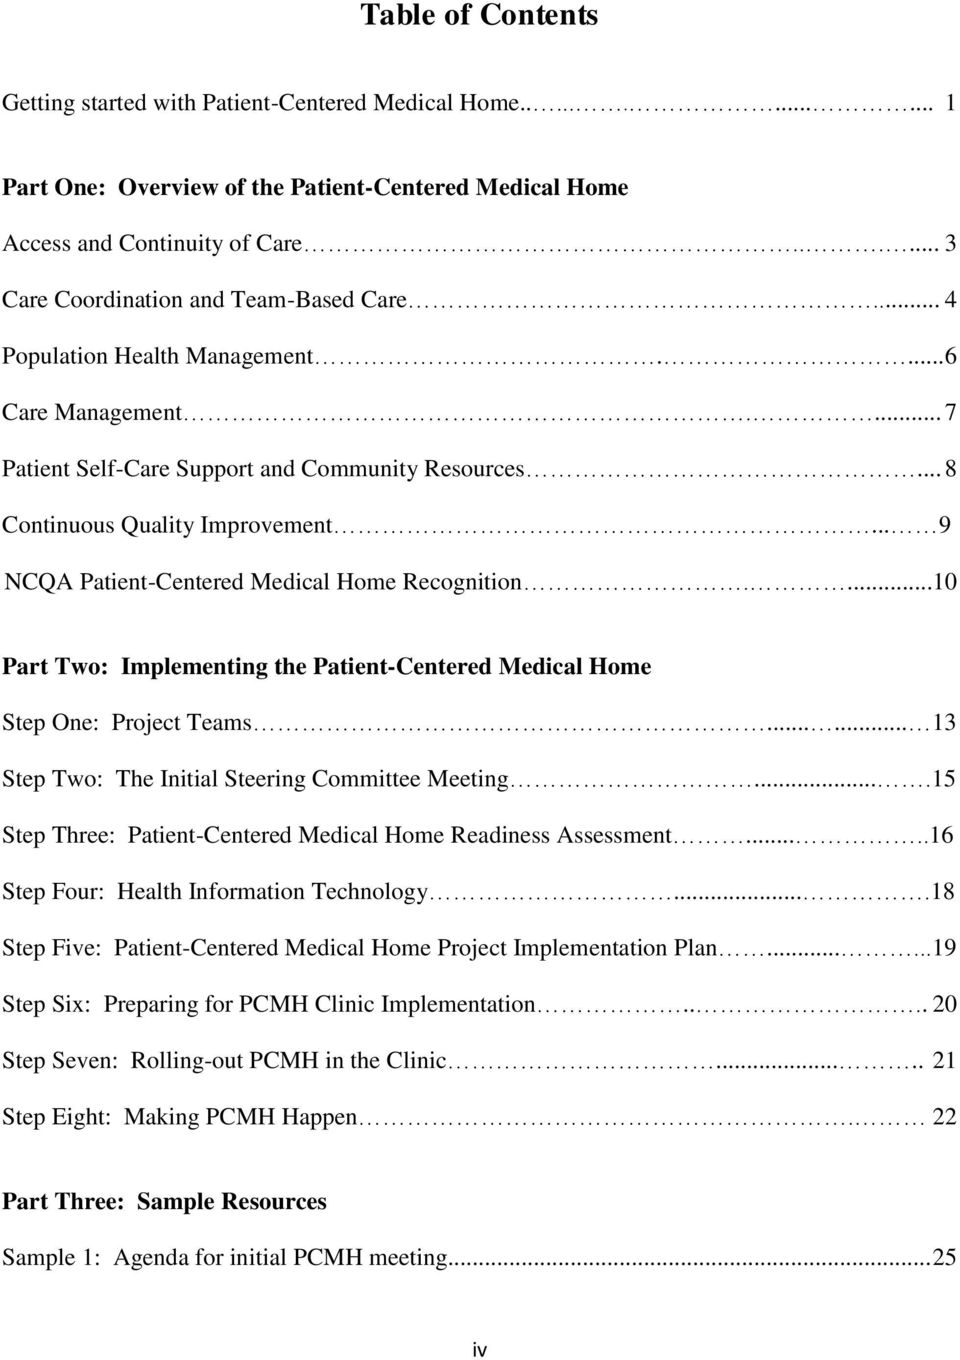 .. 9 NCQA Patient-Centered Medical Home Recognition....10 Part Two: Implementing the Patient-Centered Medical Home Step One: Project Teams...... 13 Step Two: The Initial Steering Committee Meeting.